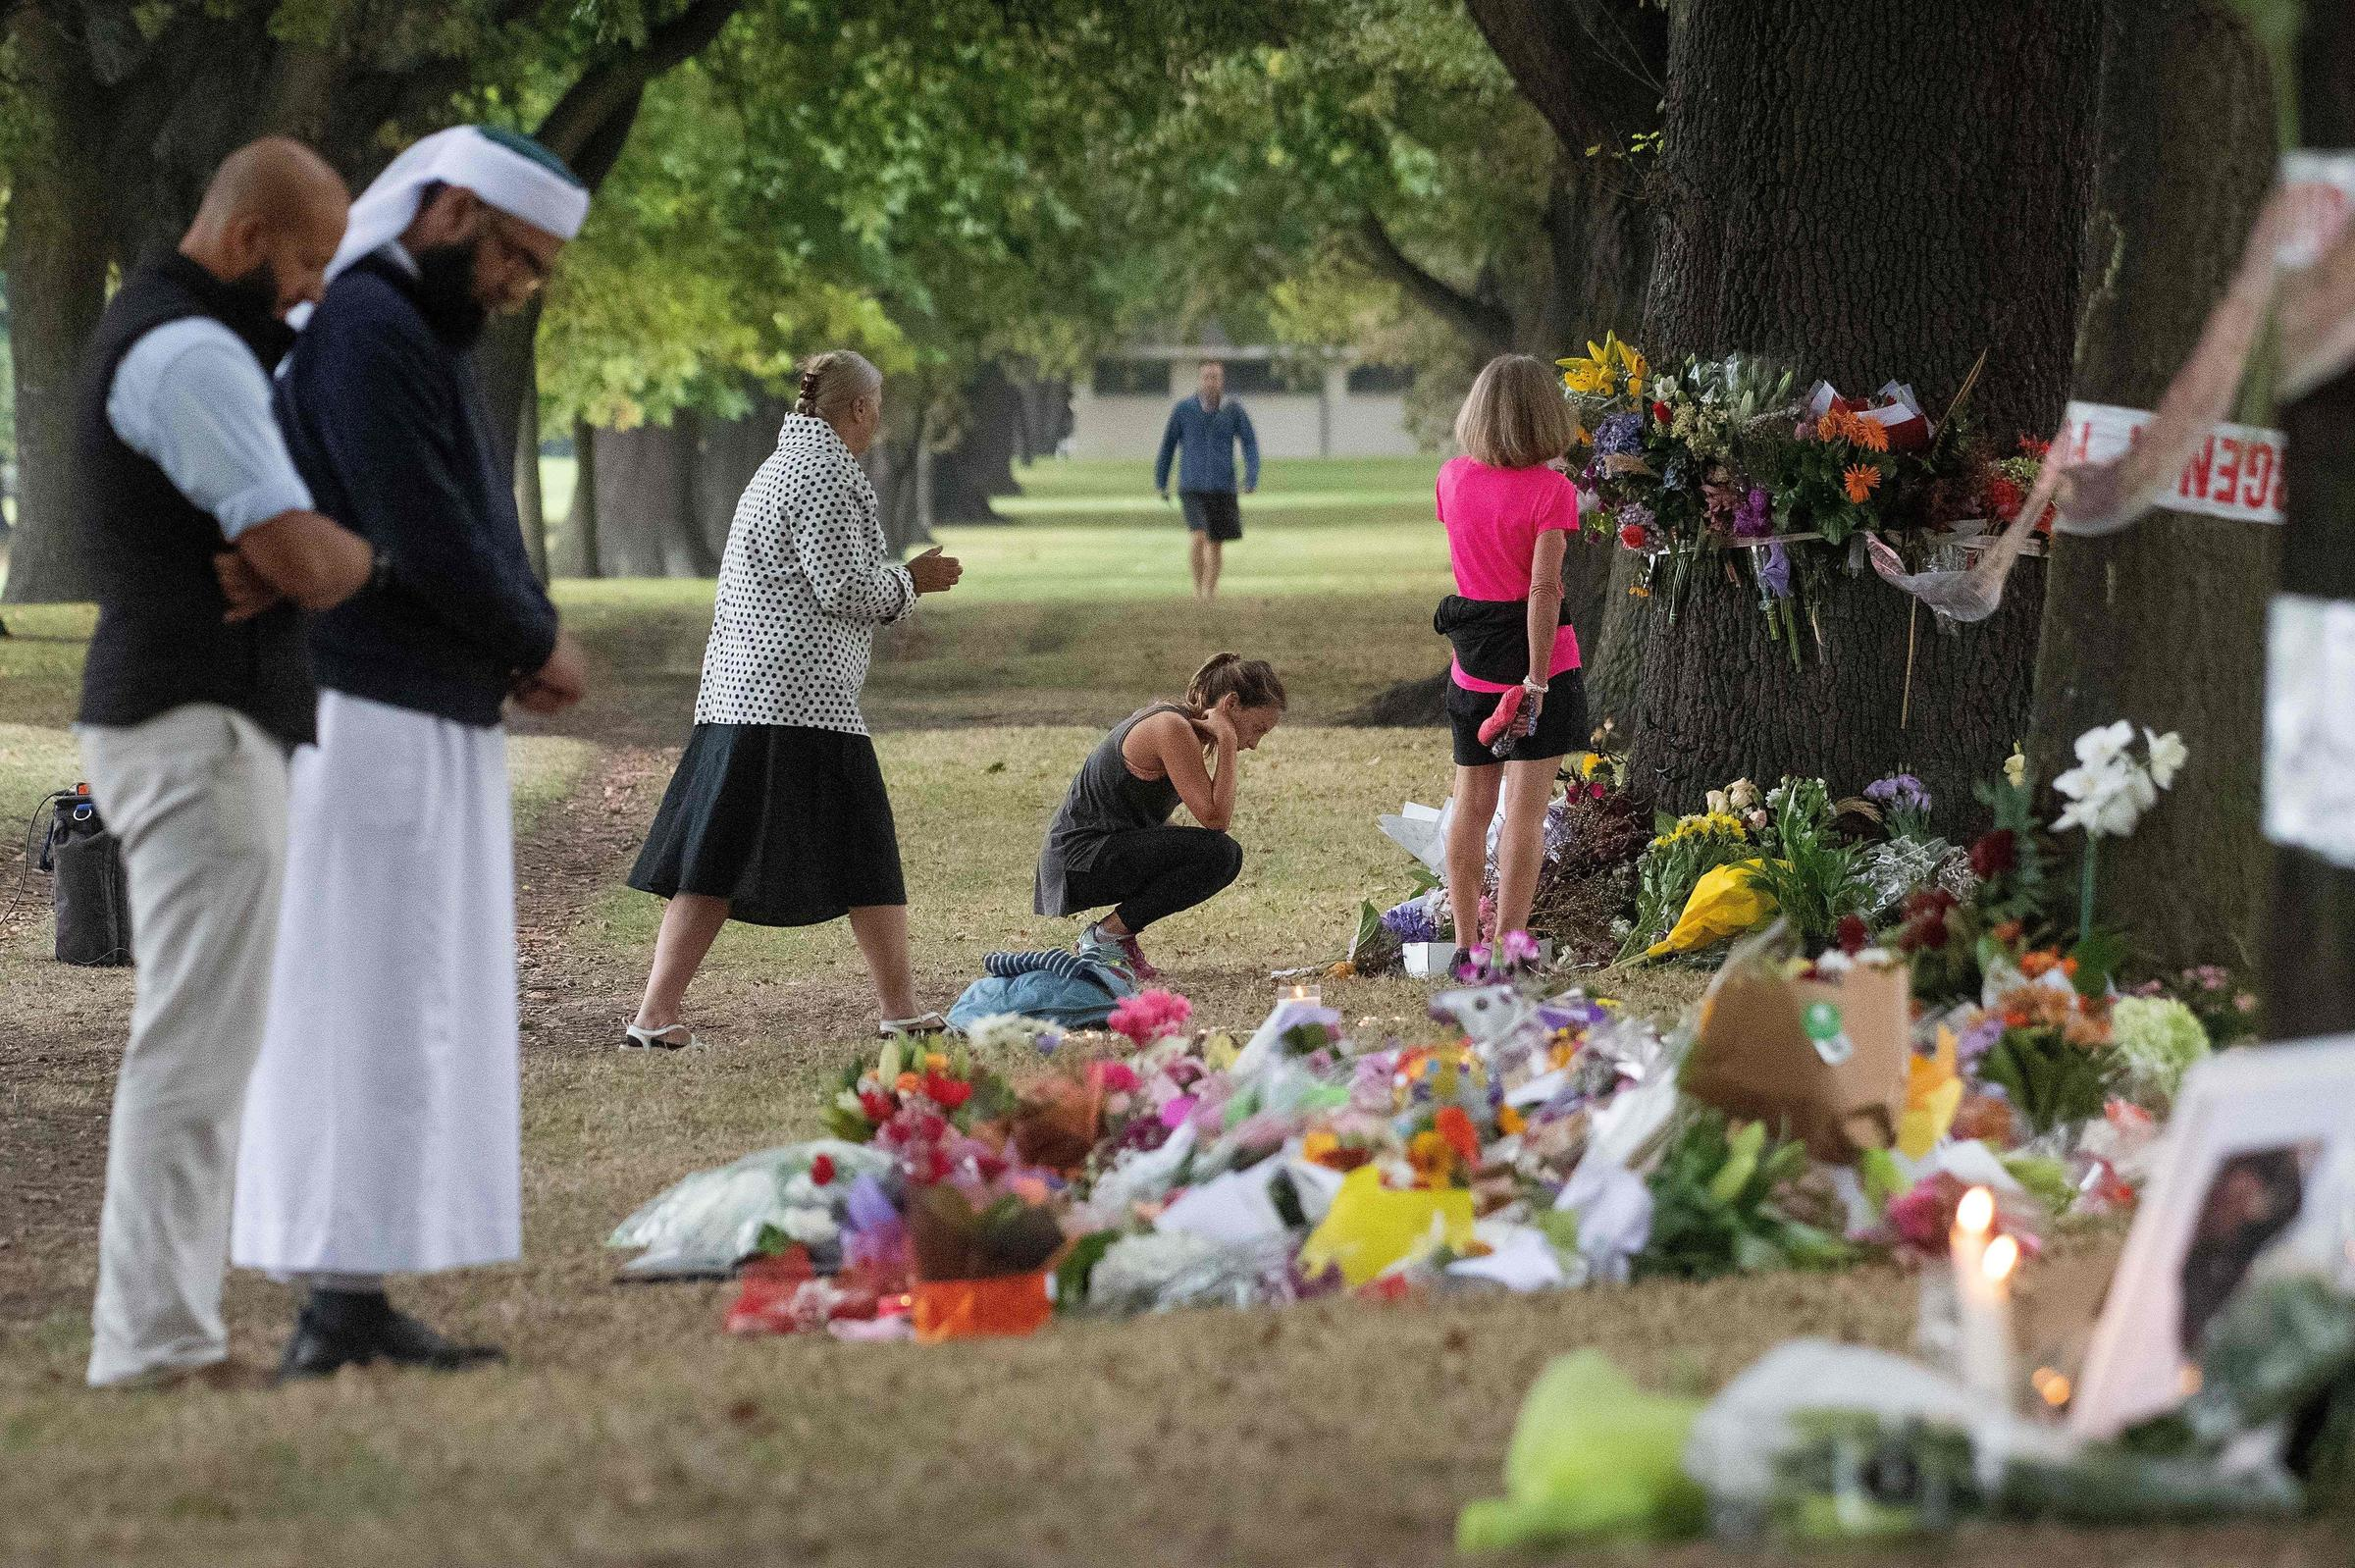 Pray For Christchurch Hd: 'Shocked' New Zealand Rifle Club Revokes Membership Of